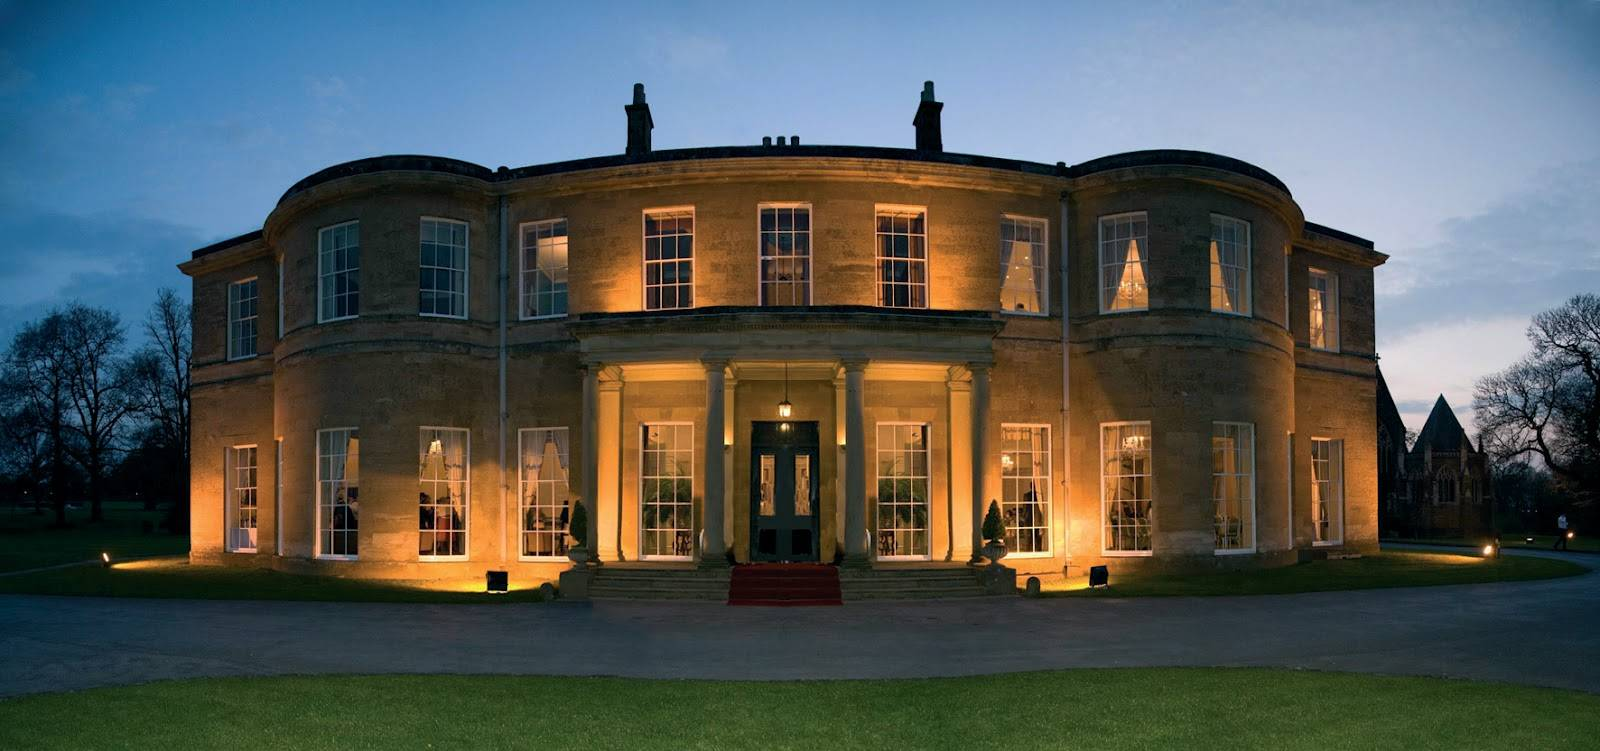 The 10 Best Hotels In Britain